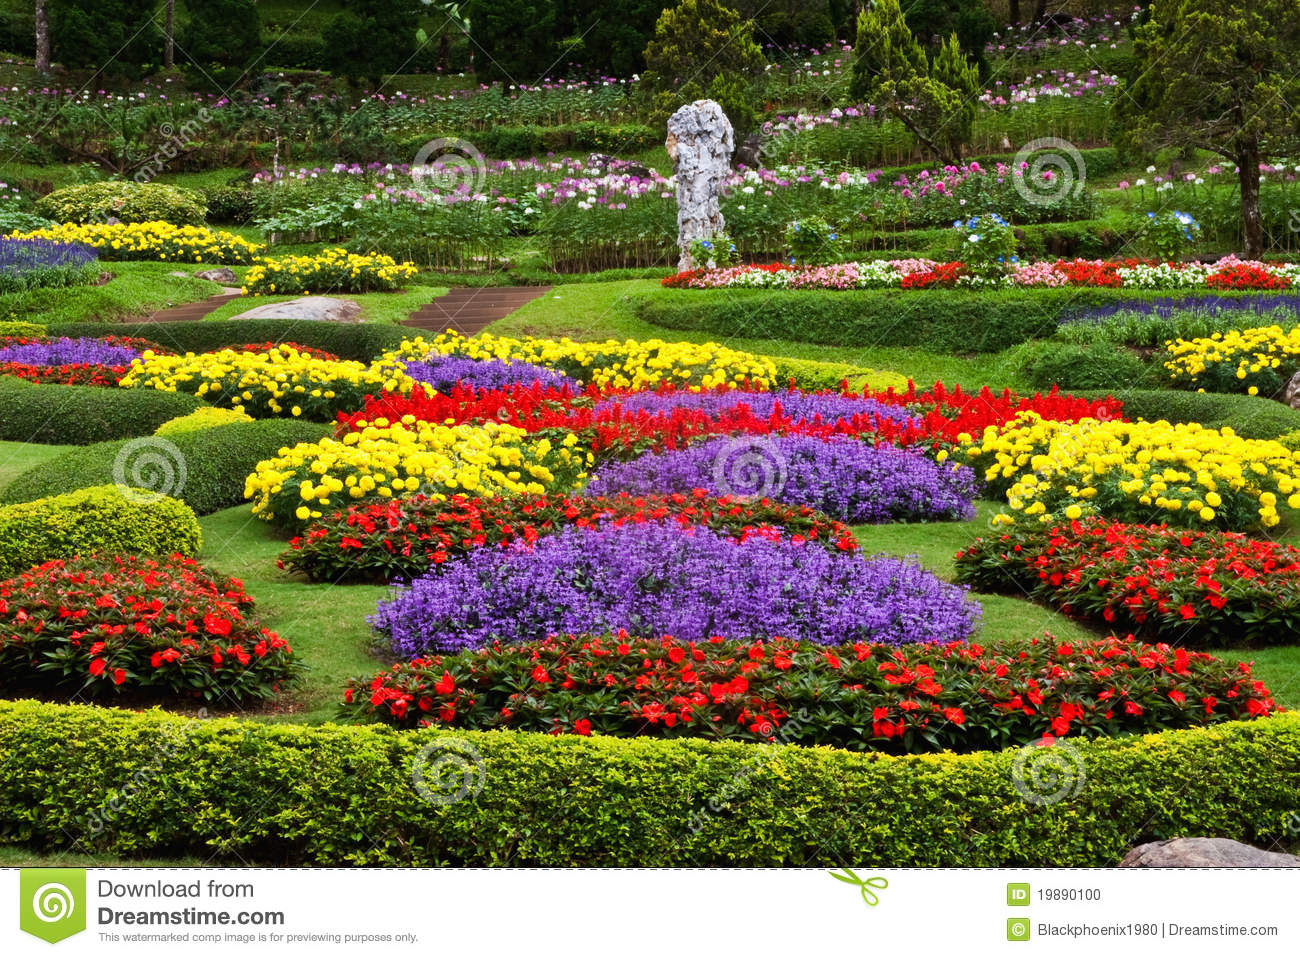 Cliserpudo beautiful flower gardens waterfalls images for Flower landscape